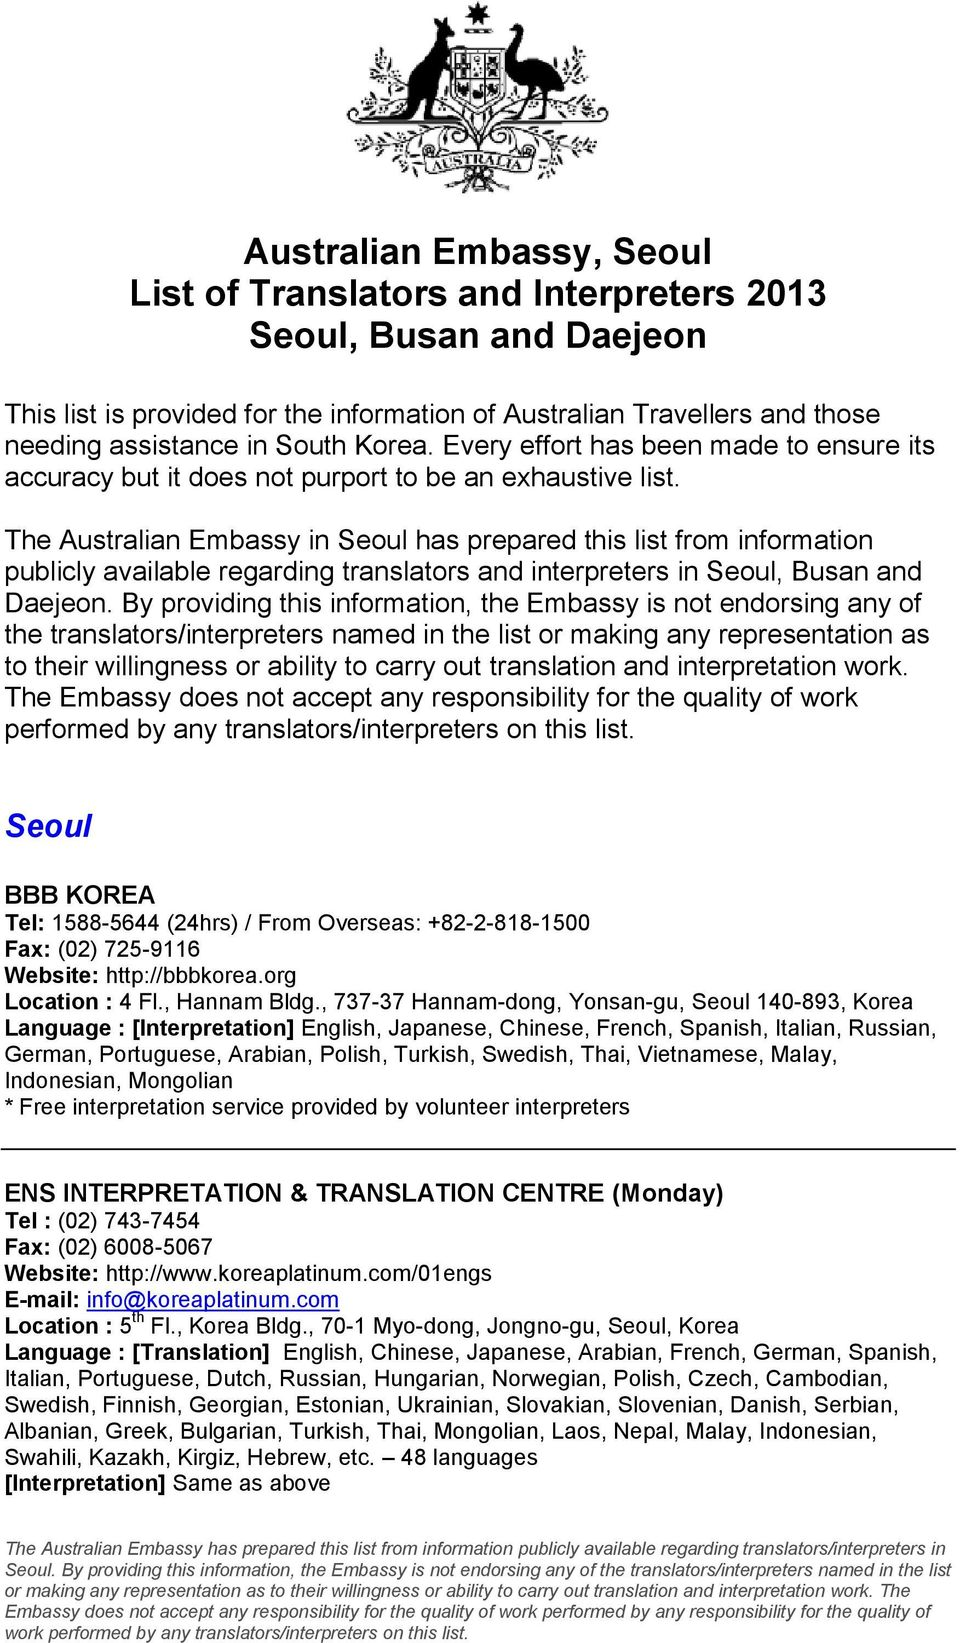 The Australian Embassy in Seoul has prepared this list from information publicly available regarding translators and interpreters in Seoul, Busan and Daejeon.